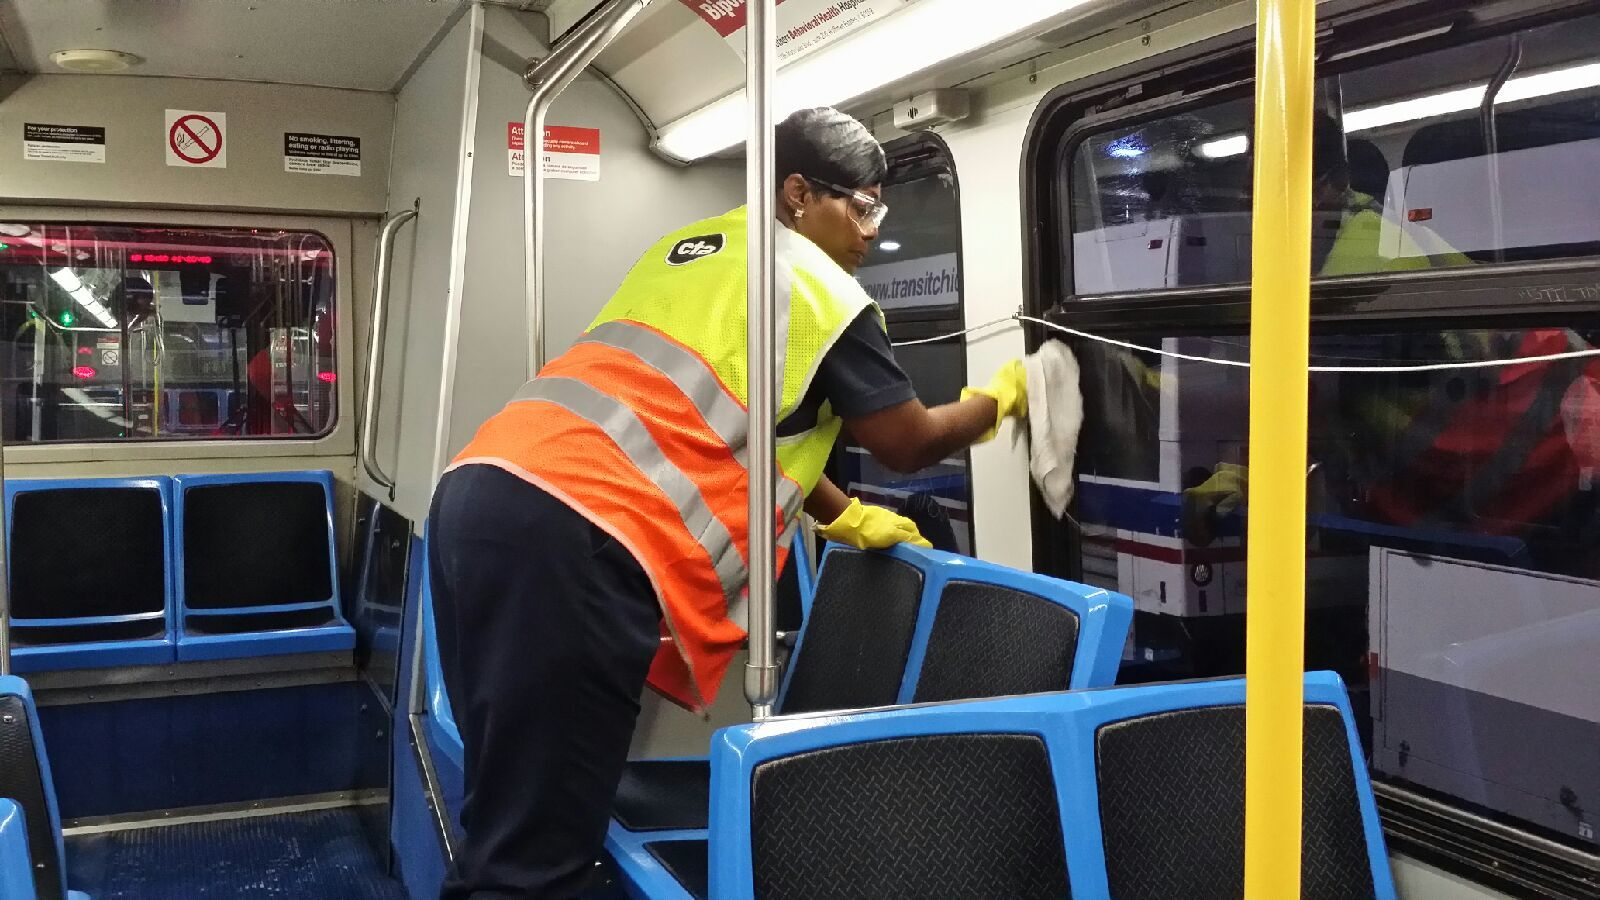 Female CTA worker shown cleaning interior of bus.